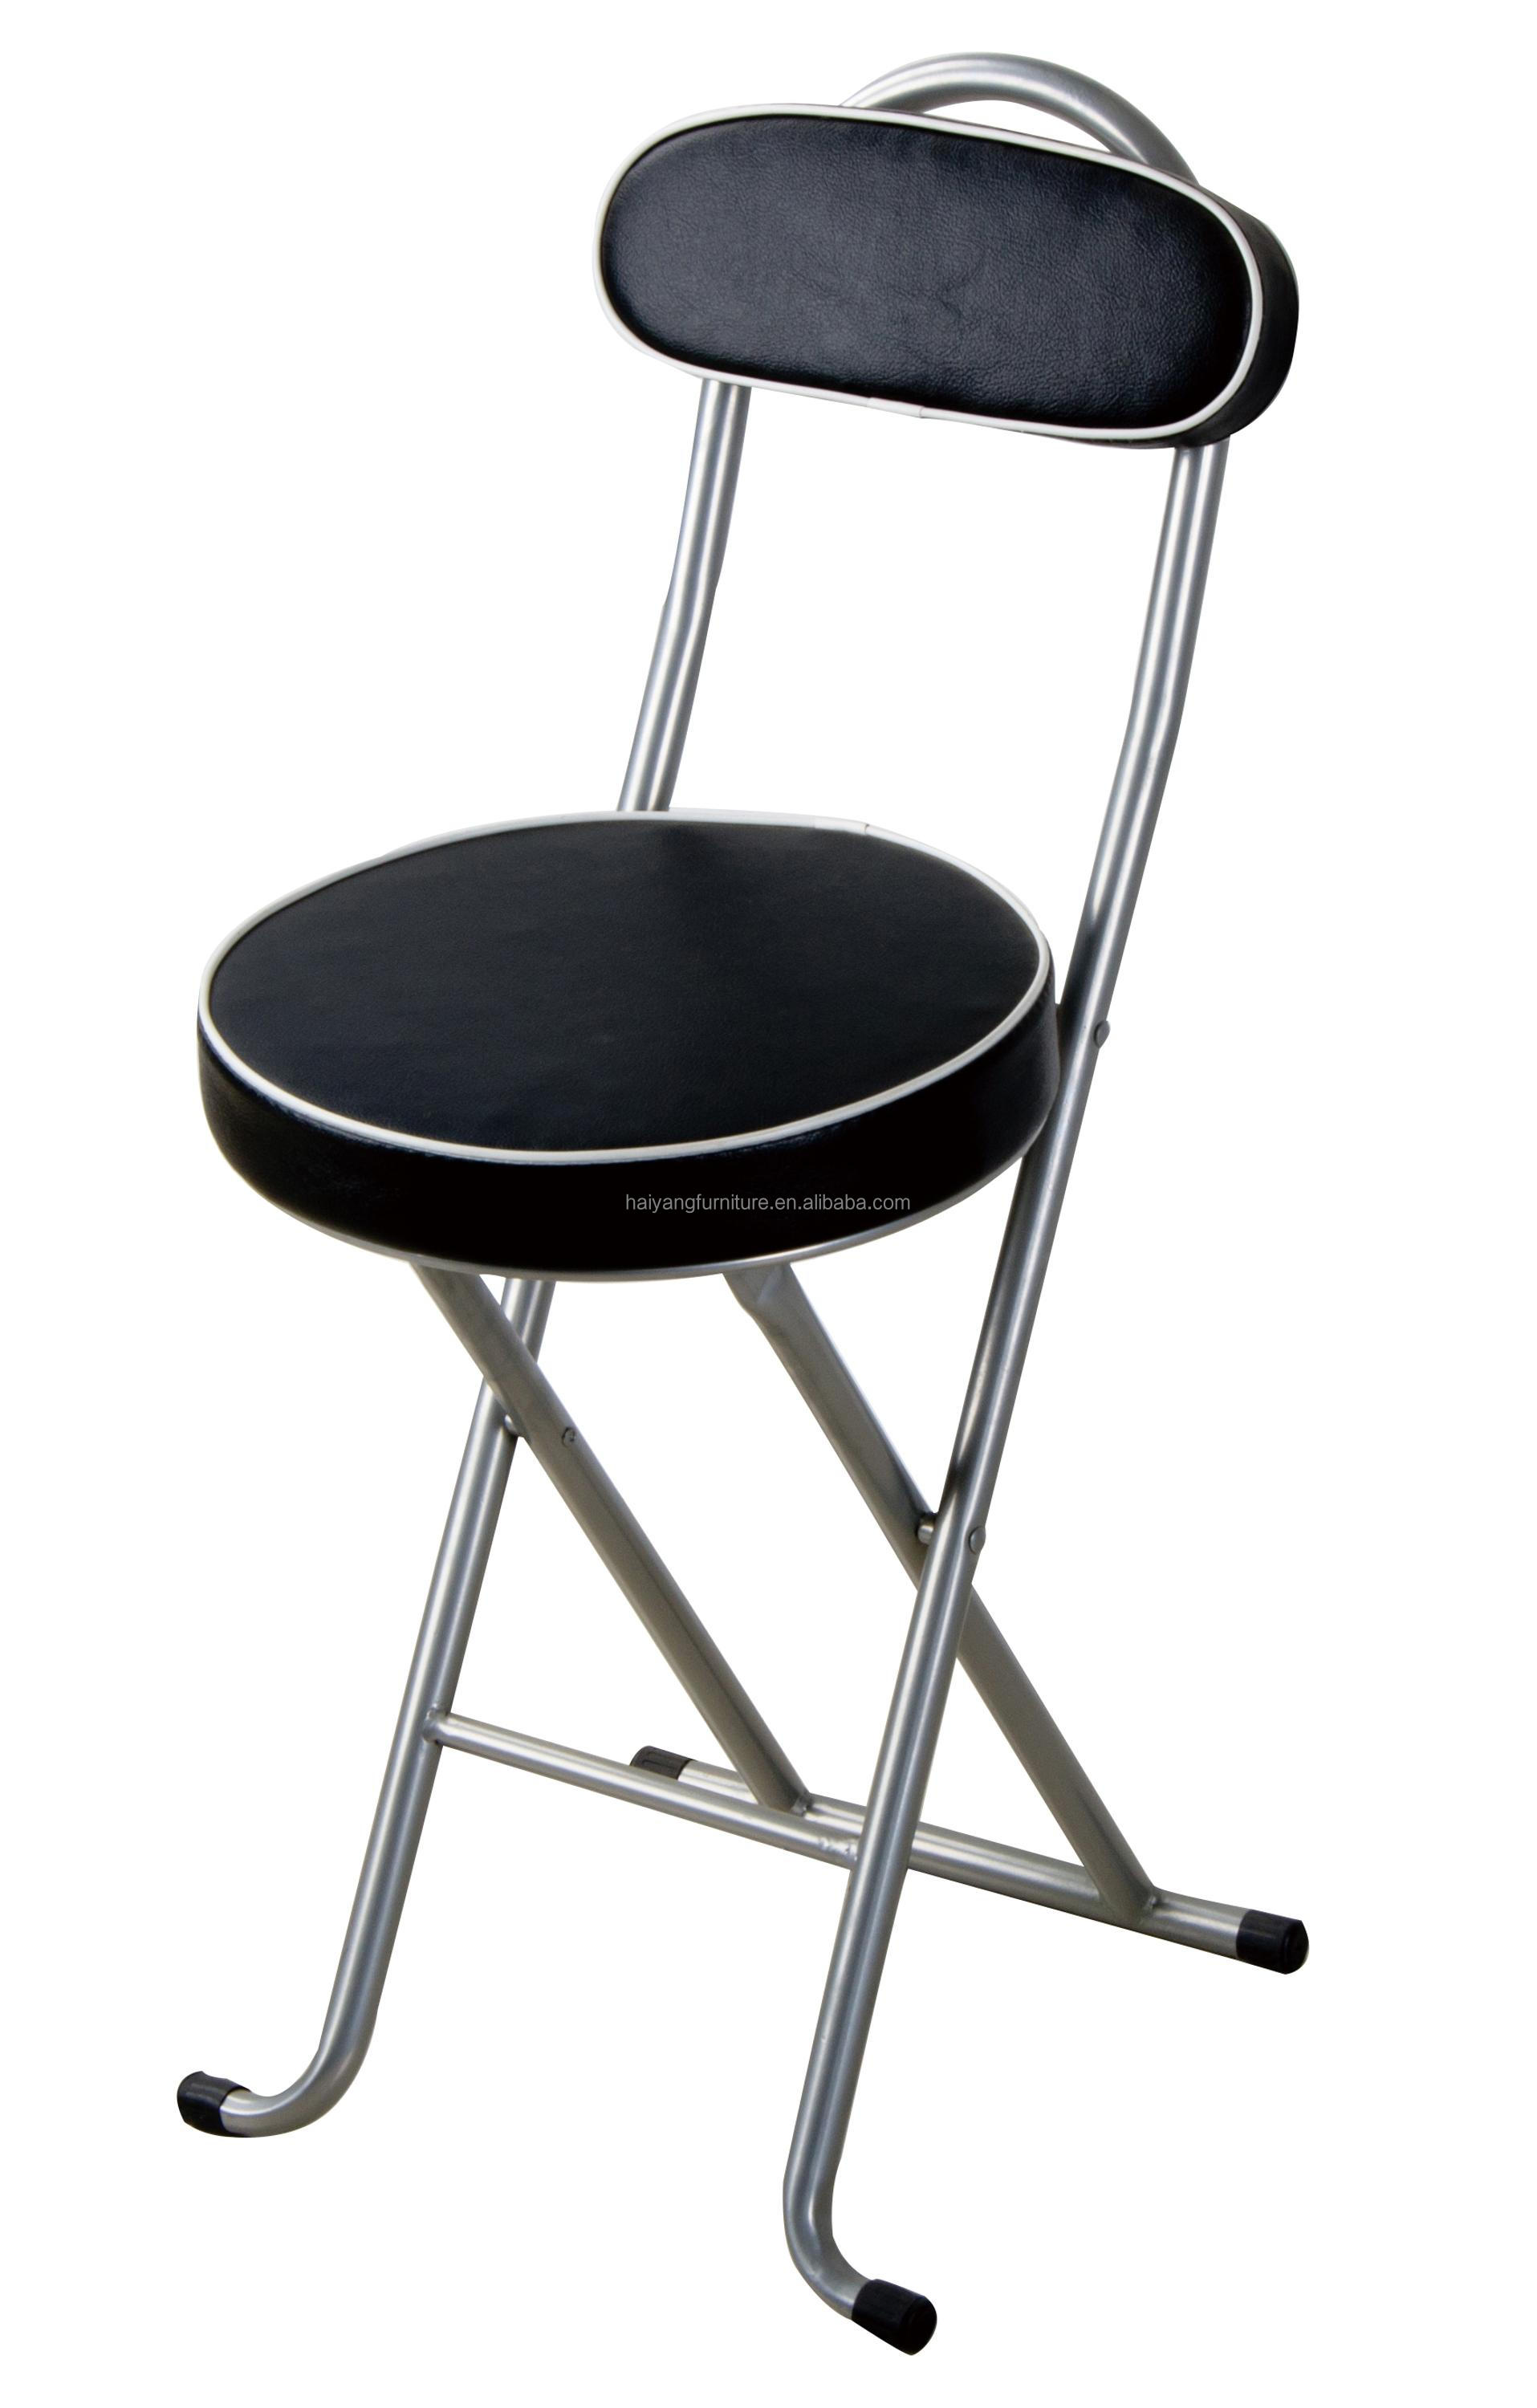 Small Round Folding Chair With Durable And Padded Seating Supplier